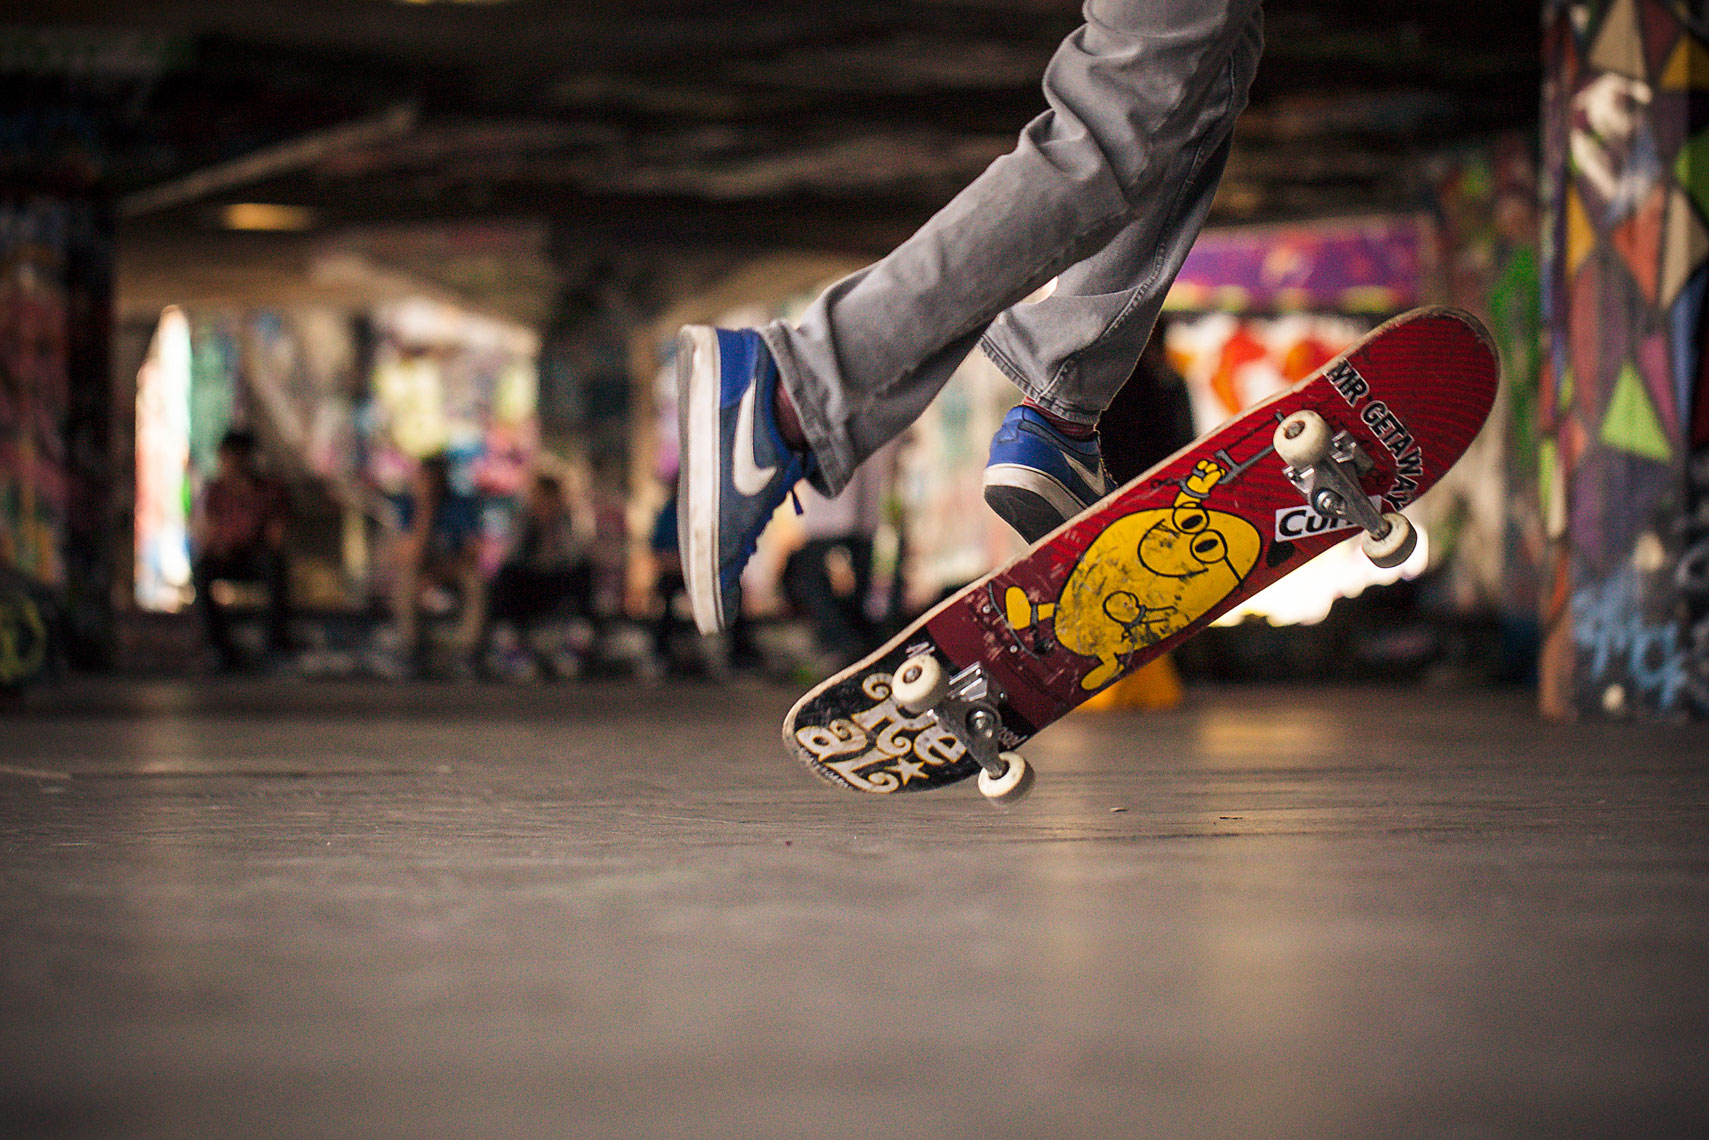 Young skateboarder in midair performing trick in central London.